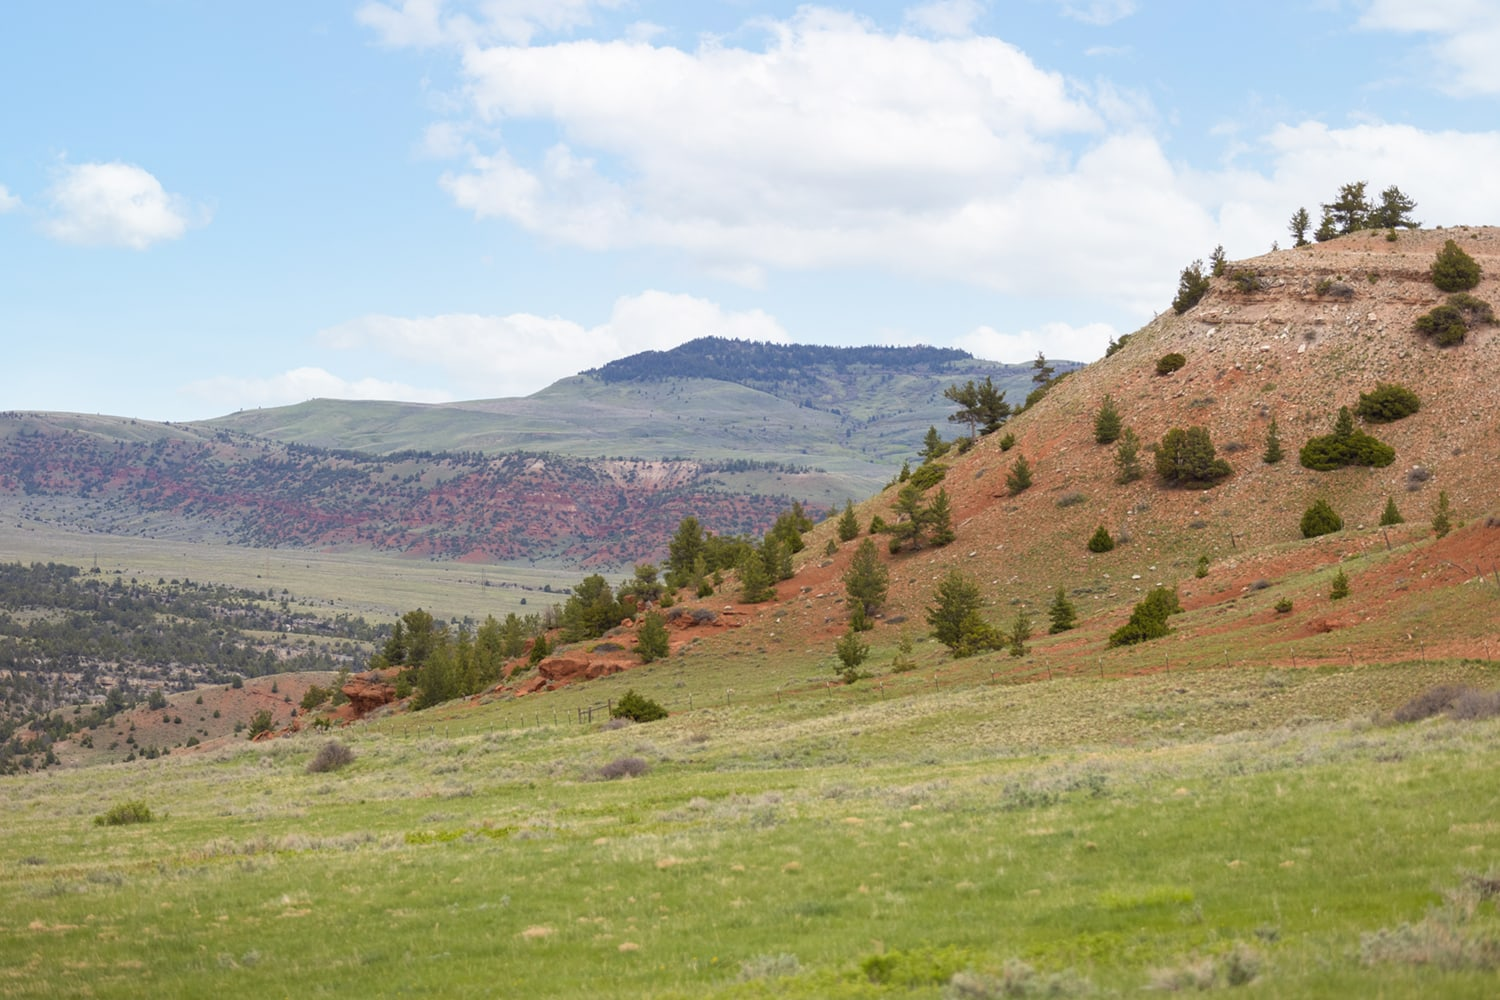 hill country montana pryor mountains outlaw ranch